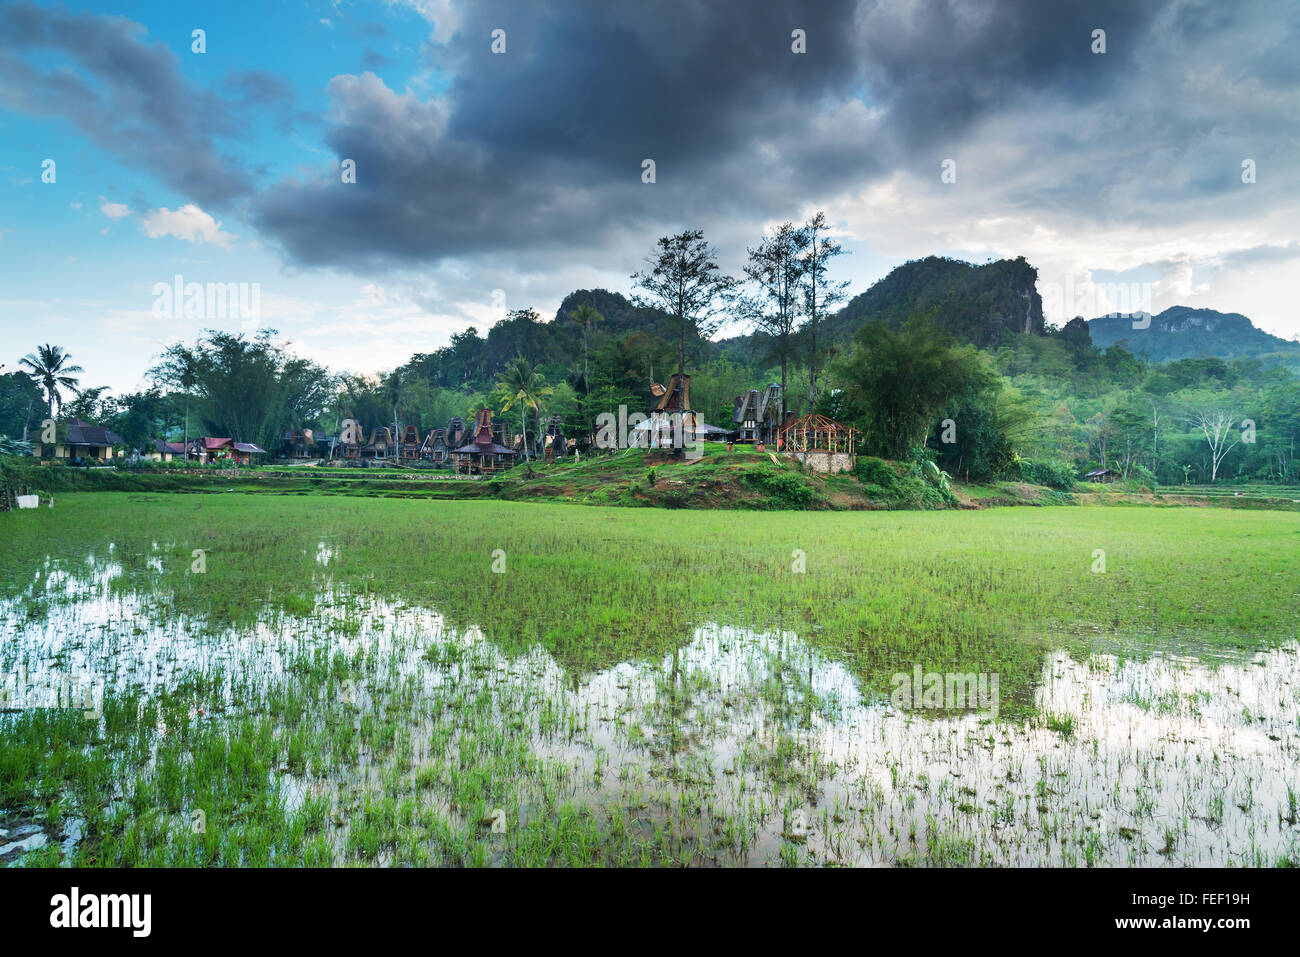 Tongkonan traditional village Kete Kesu. Tana Toraja, Sulawesi. Indonesia - Stock Image